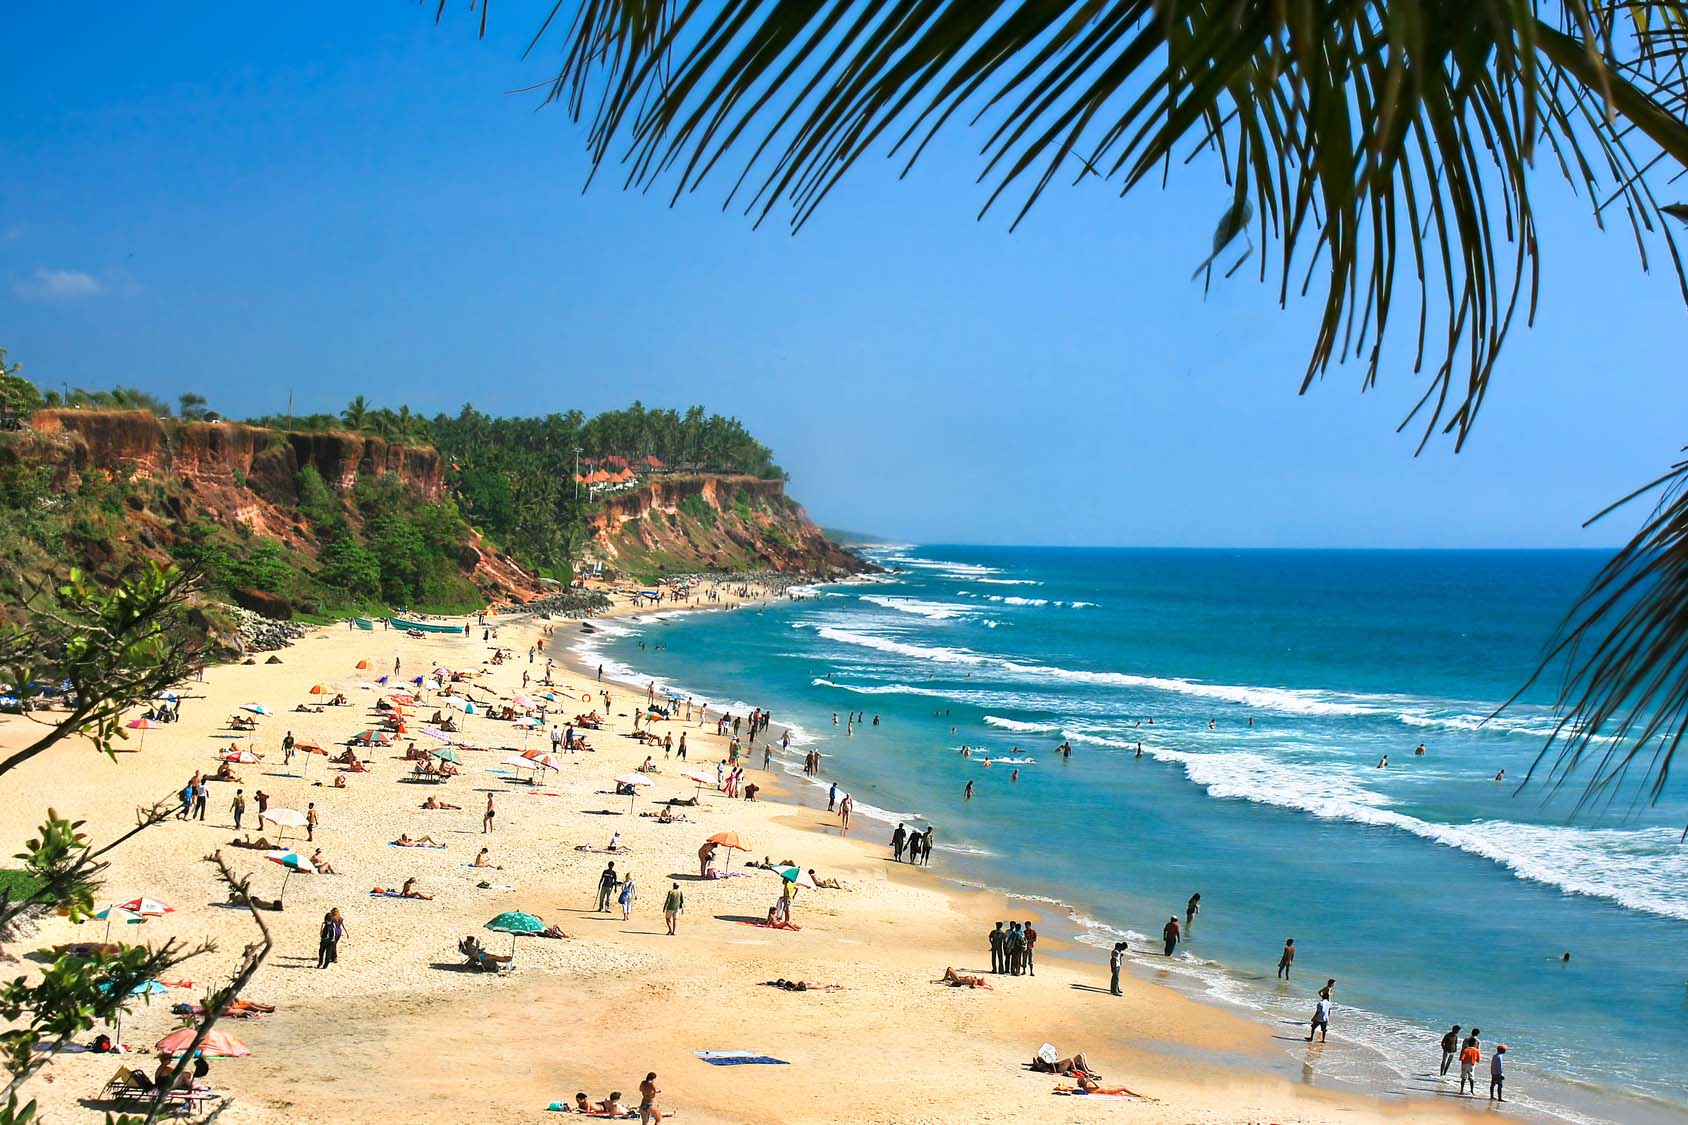 Destinations In India For Tourists - Main beach in Varkala, Kerala